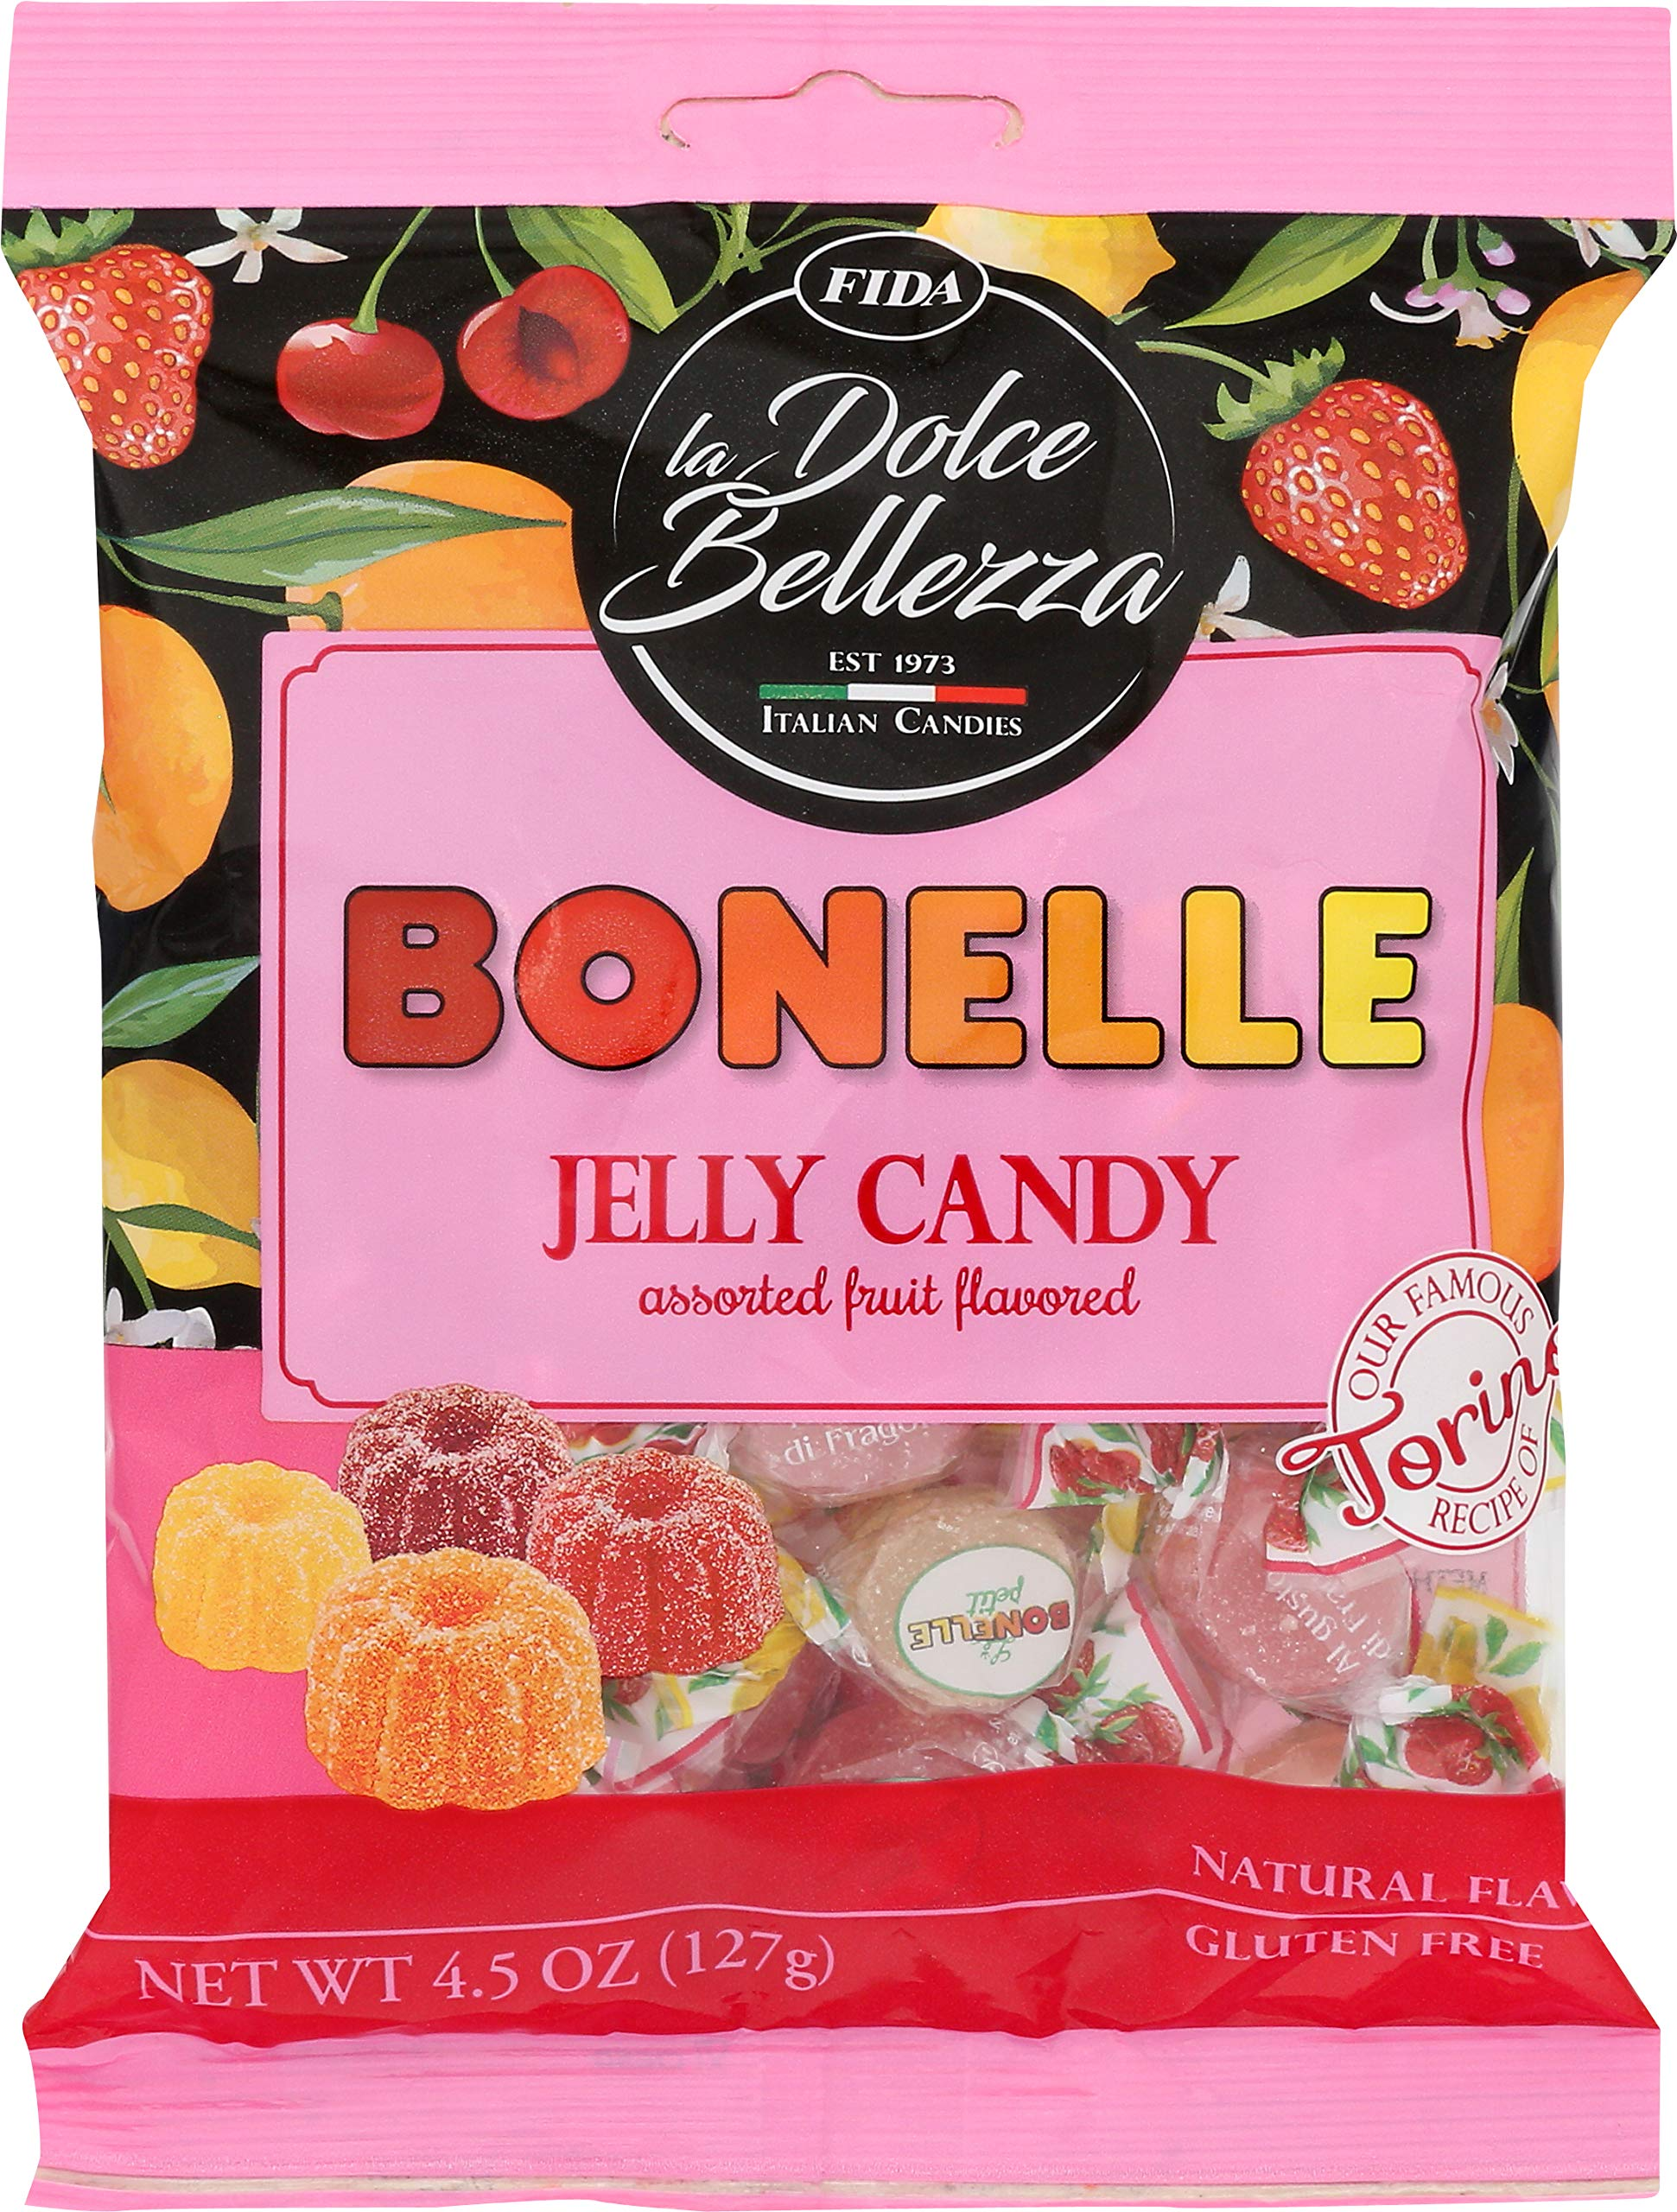 Fida Bonelle Assorted Fruit Flavored Jelly Candy, 4.5 Ounce (Pack of 12)